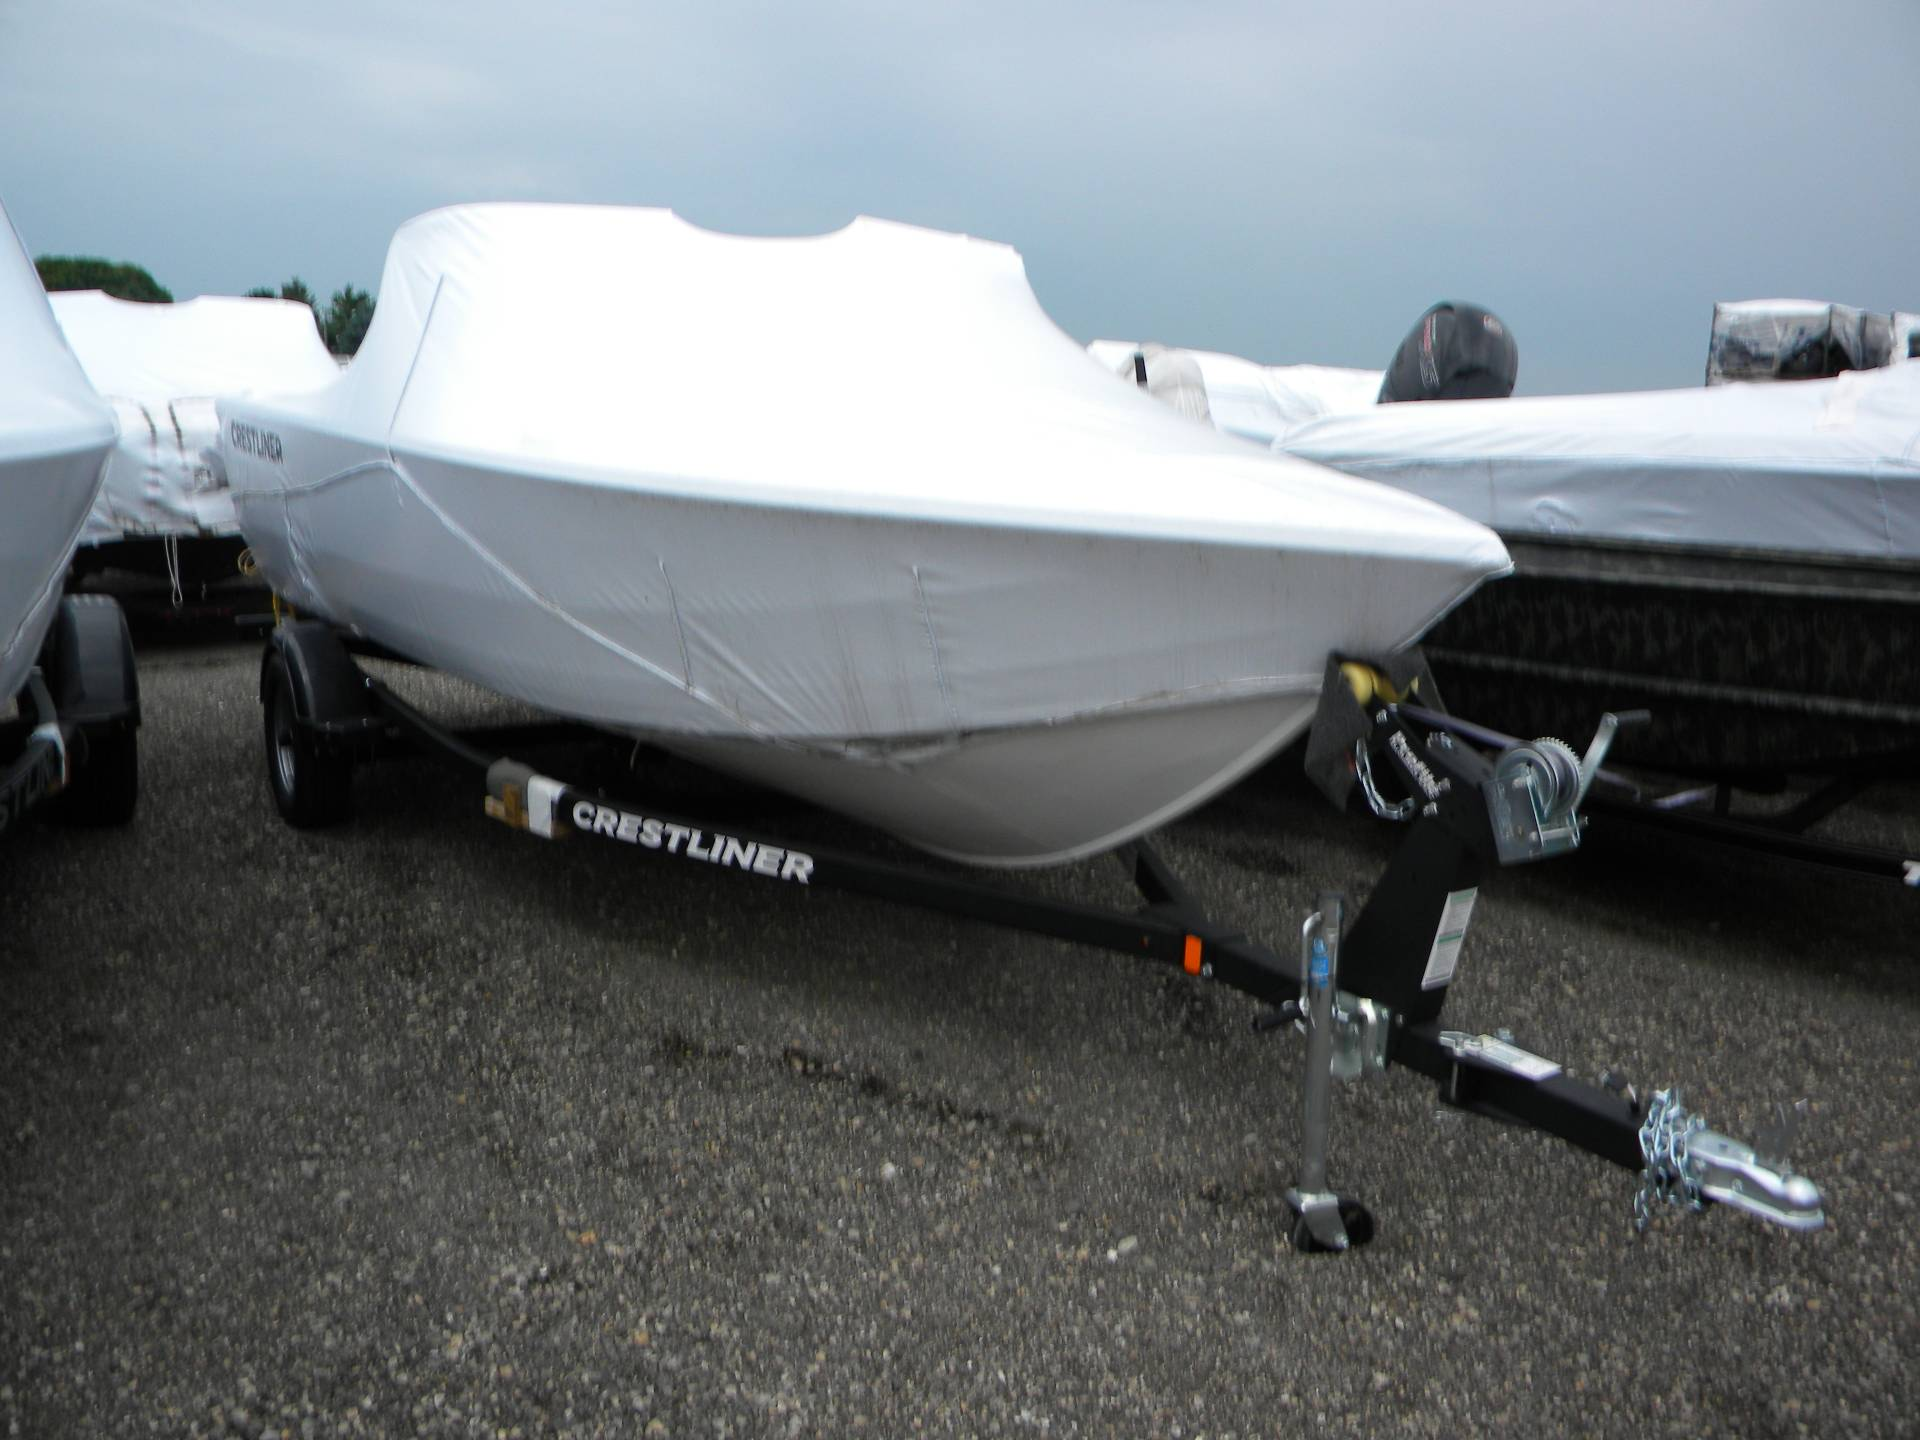 2019 Crestliner 1650 FISH HAWK SE WT in Kaukauna, Wisconsin - Photo 1